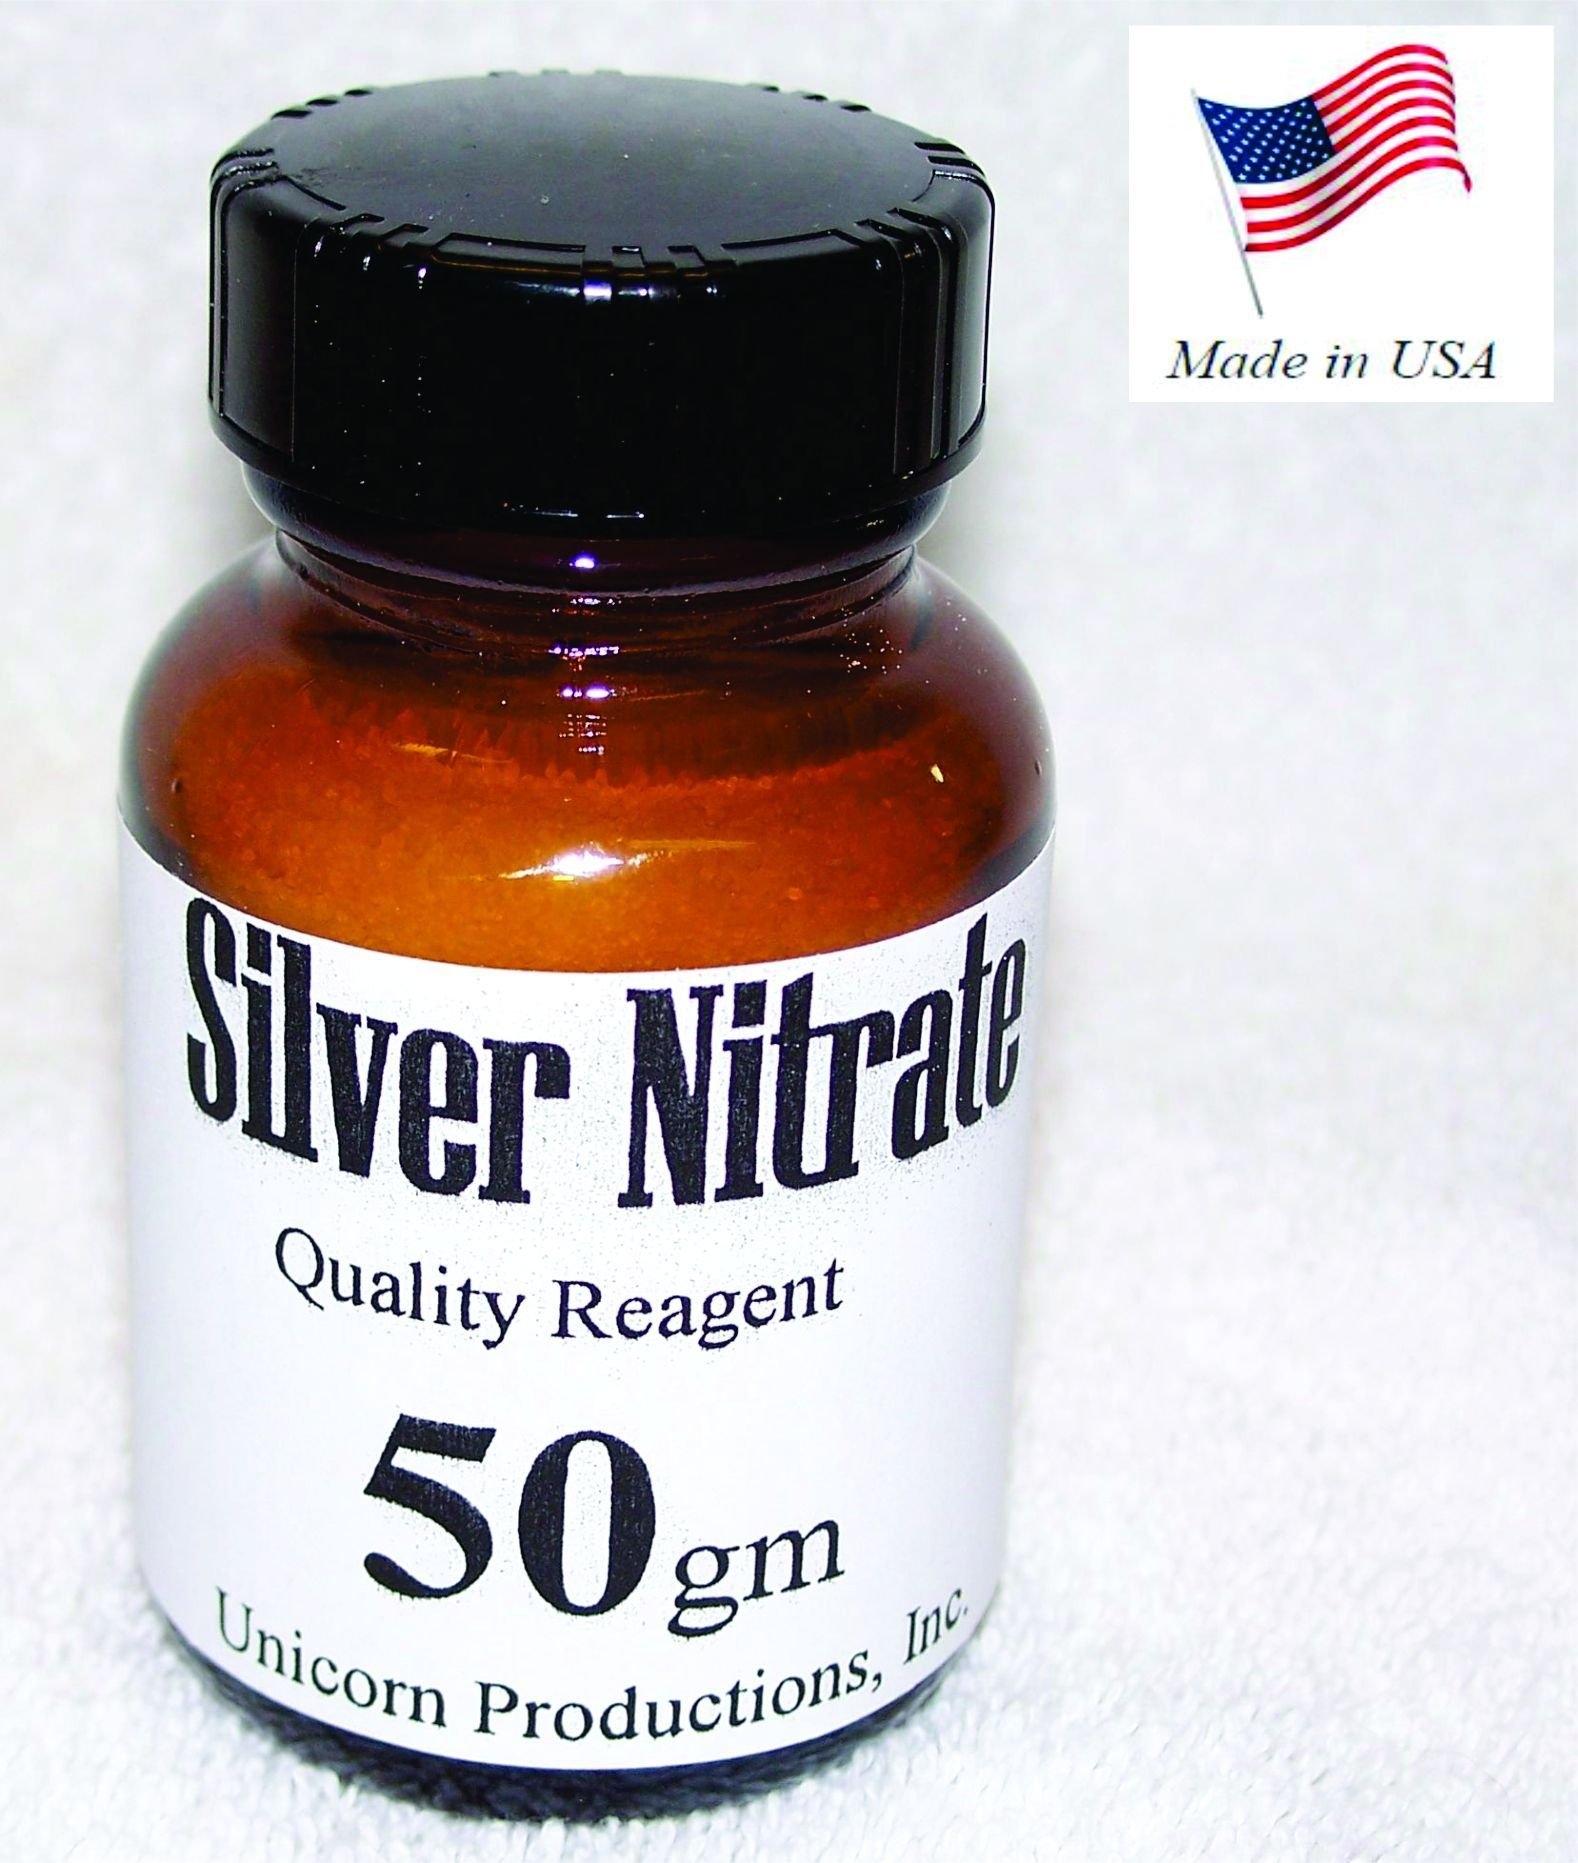 Silver Nitrate - USA Finest - 50gm by UPI Metals